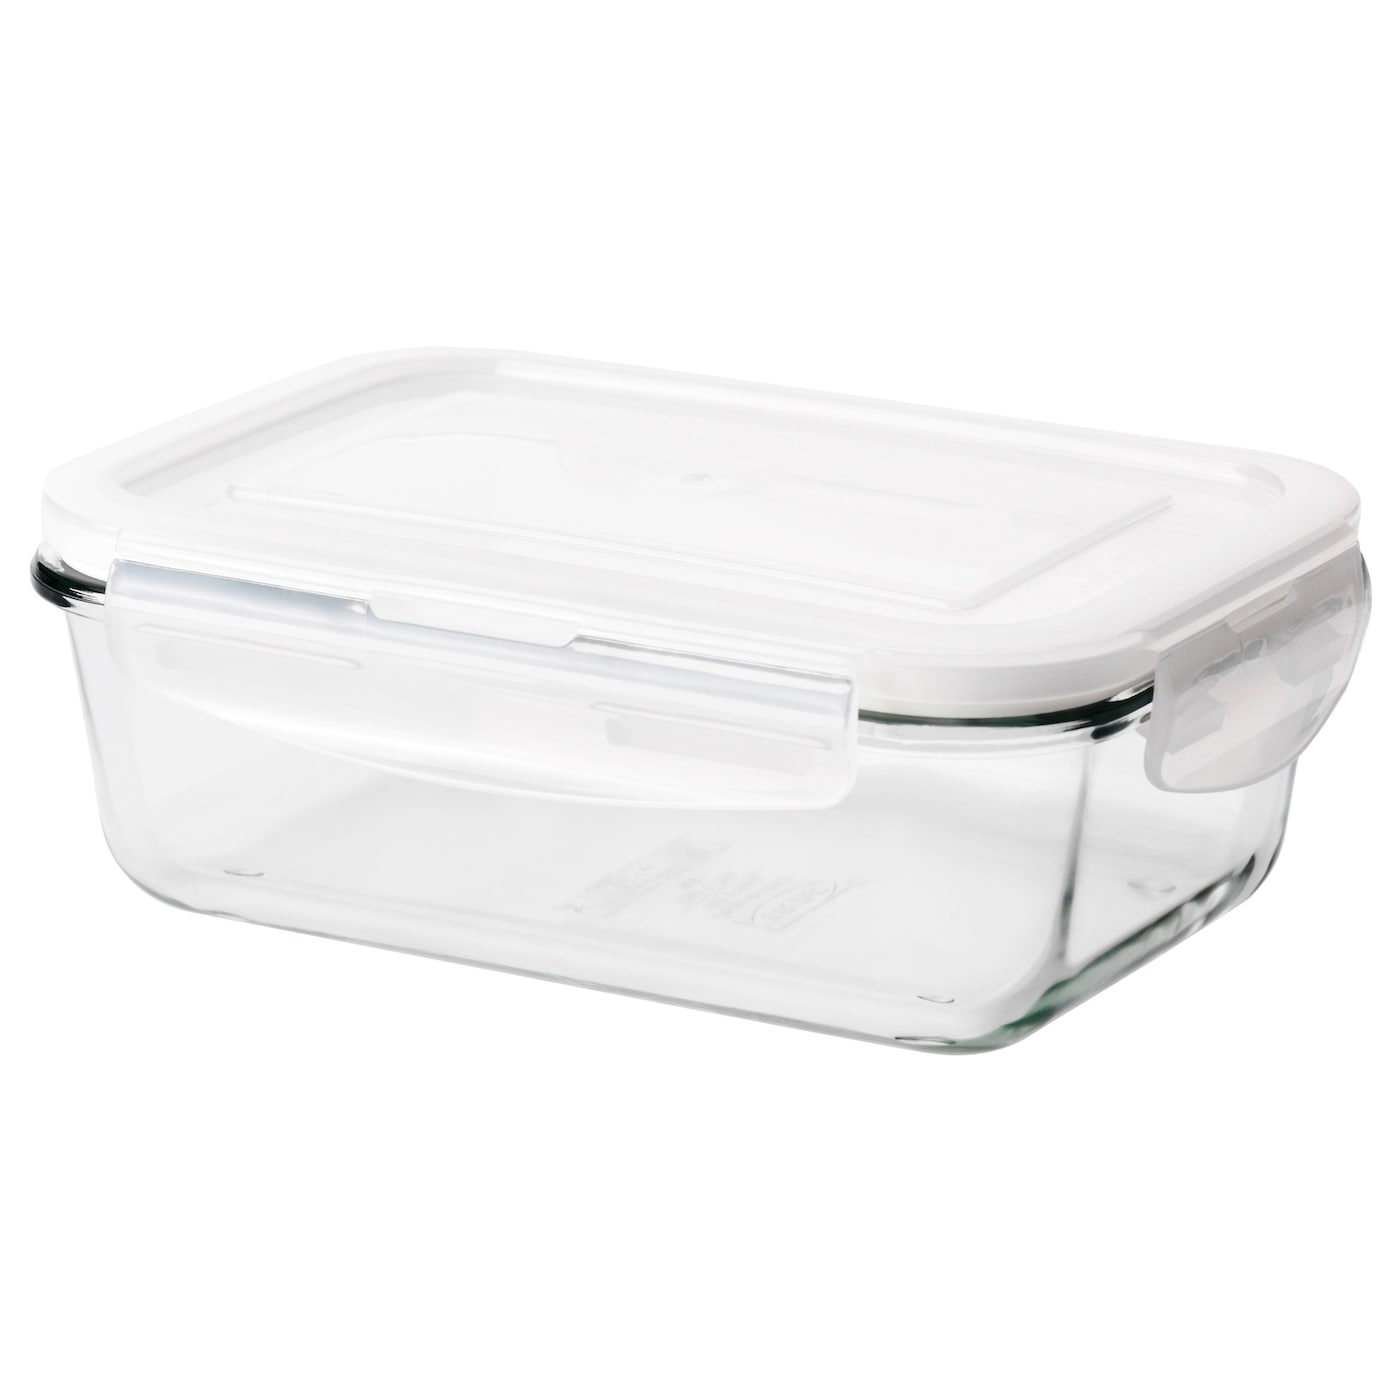 IKEA FÖRTROLIG food container